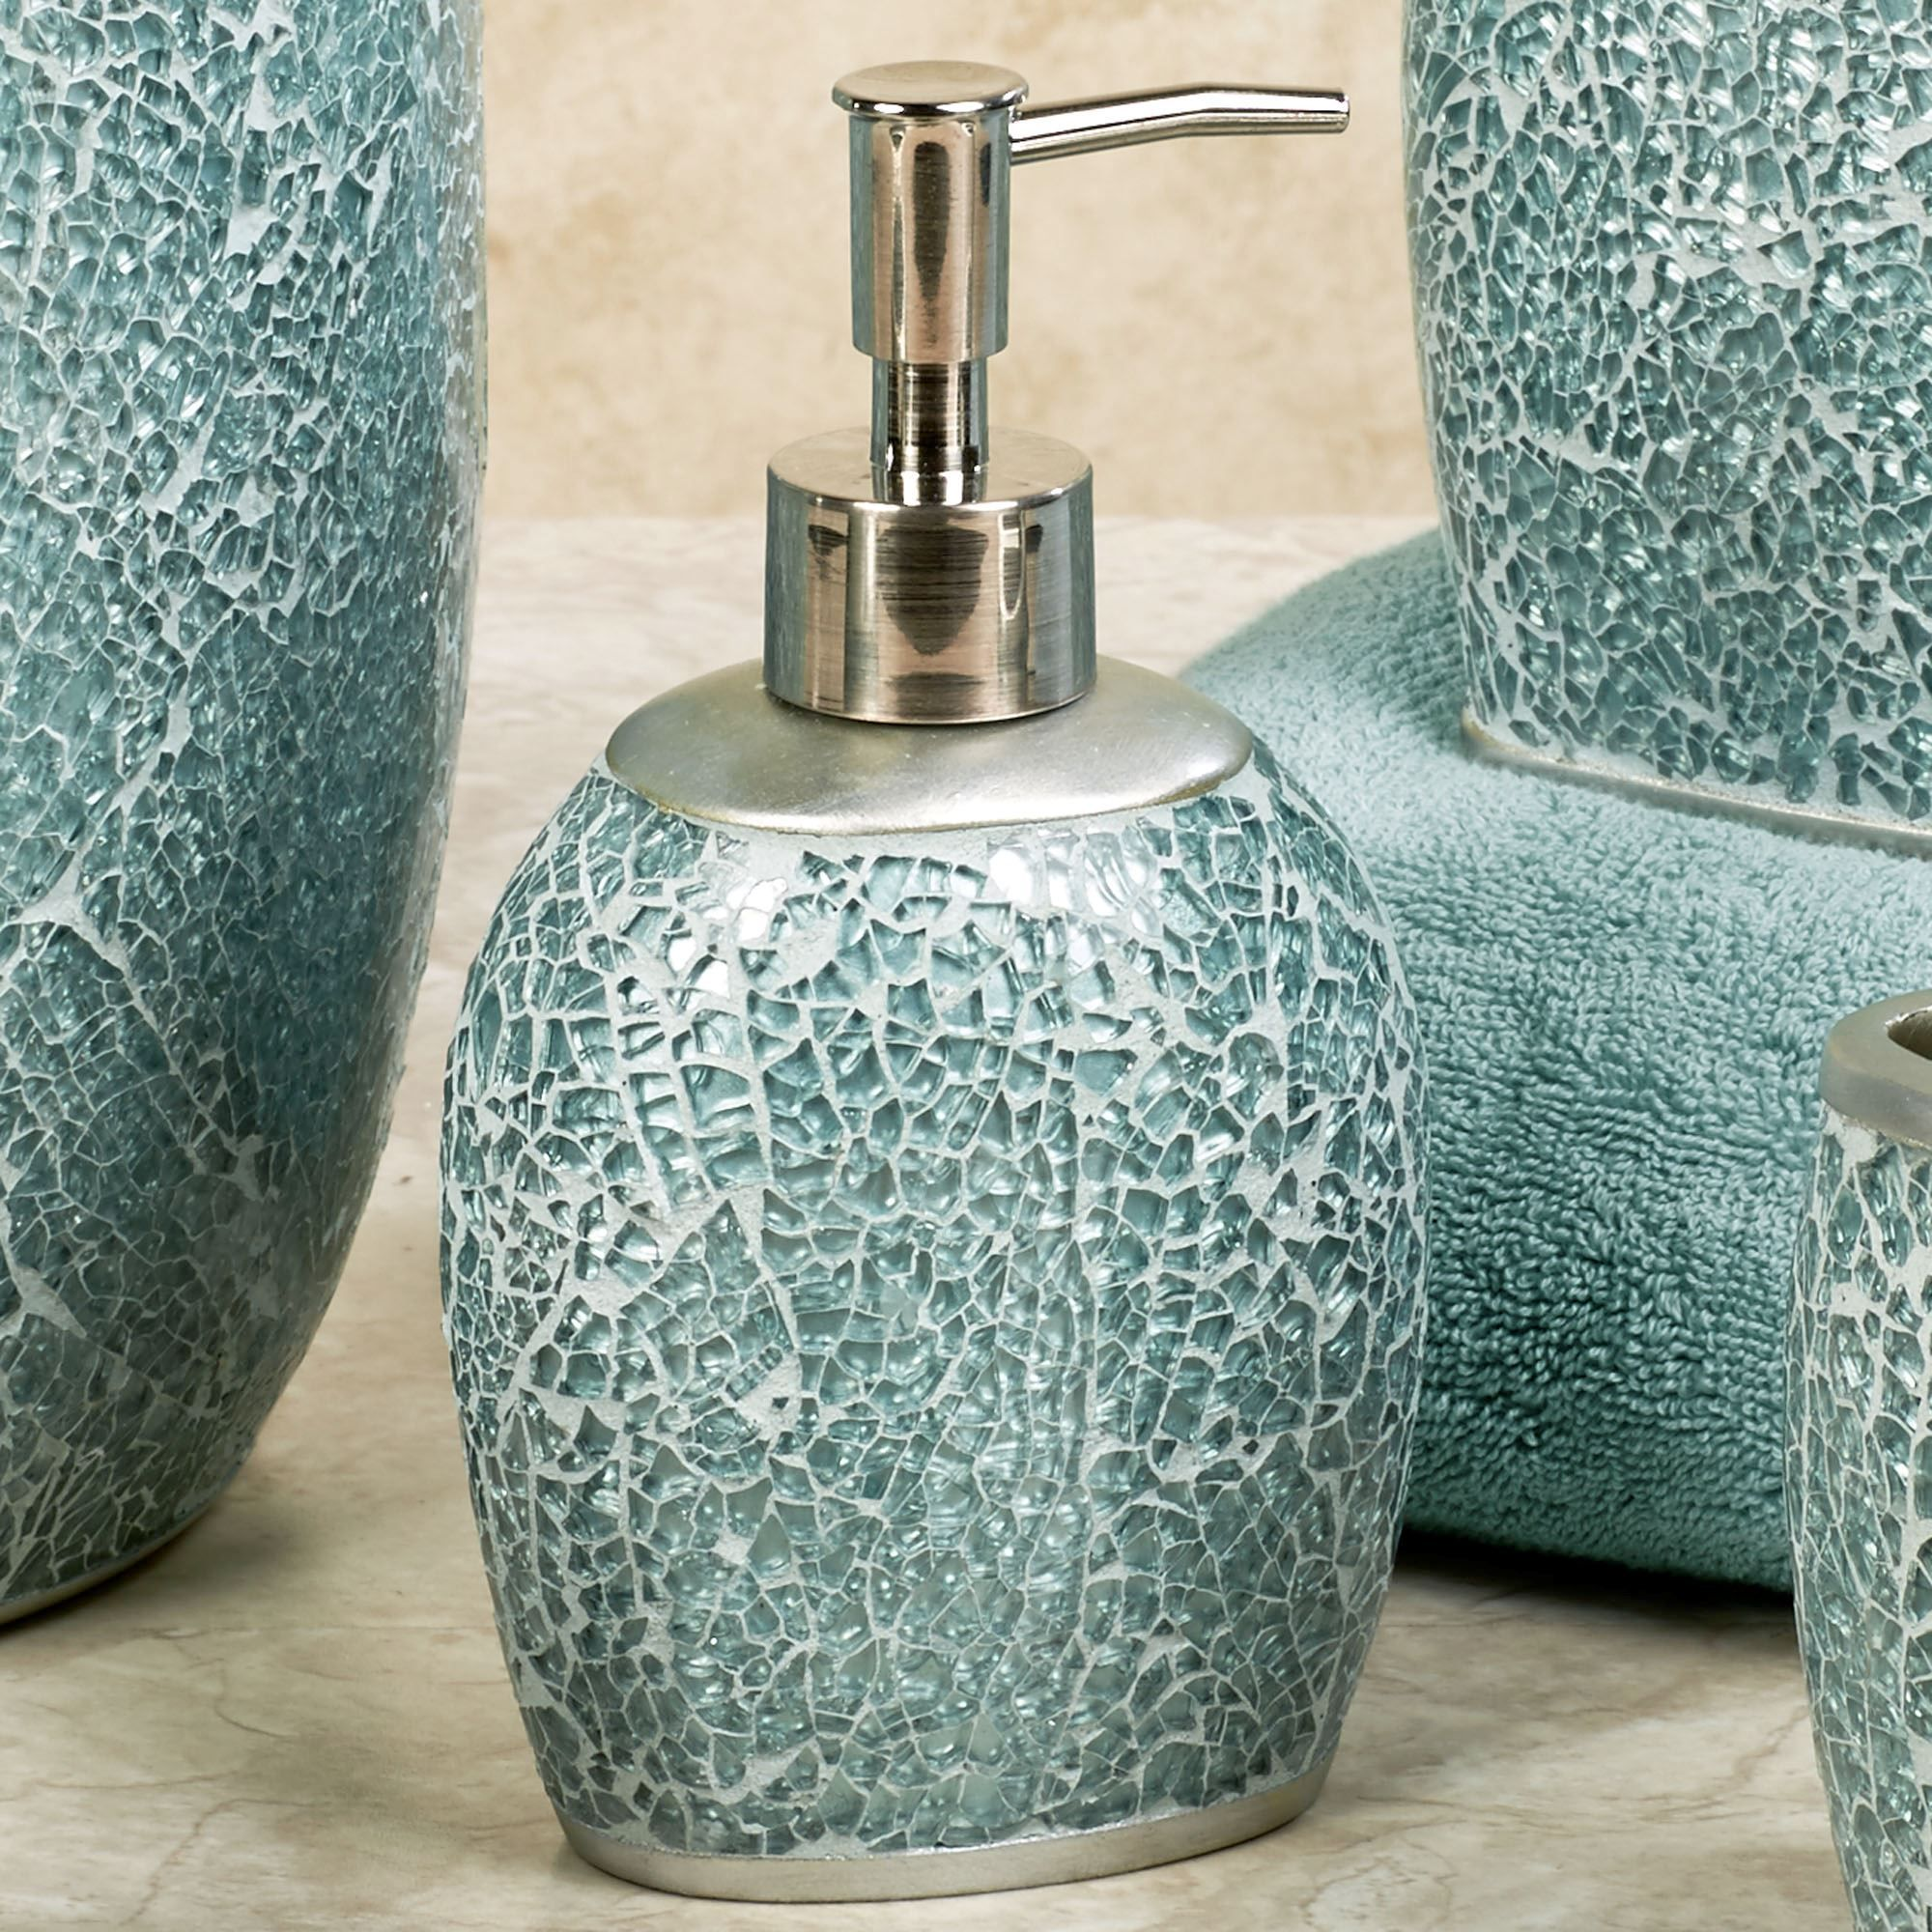 blue grey bathroom accessories. Calm Waters Light Aqua Mosaic Bath Accessories Bathroom  blue grey The Best 100 Blue Grey Image Collections